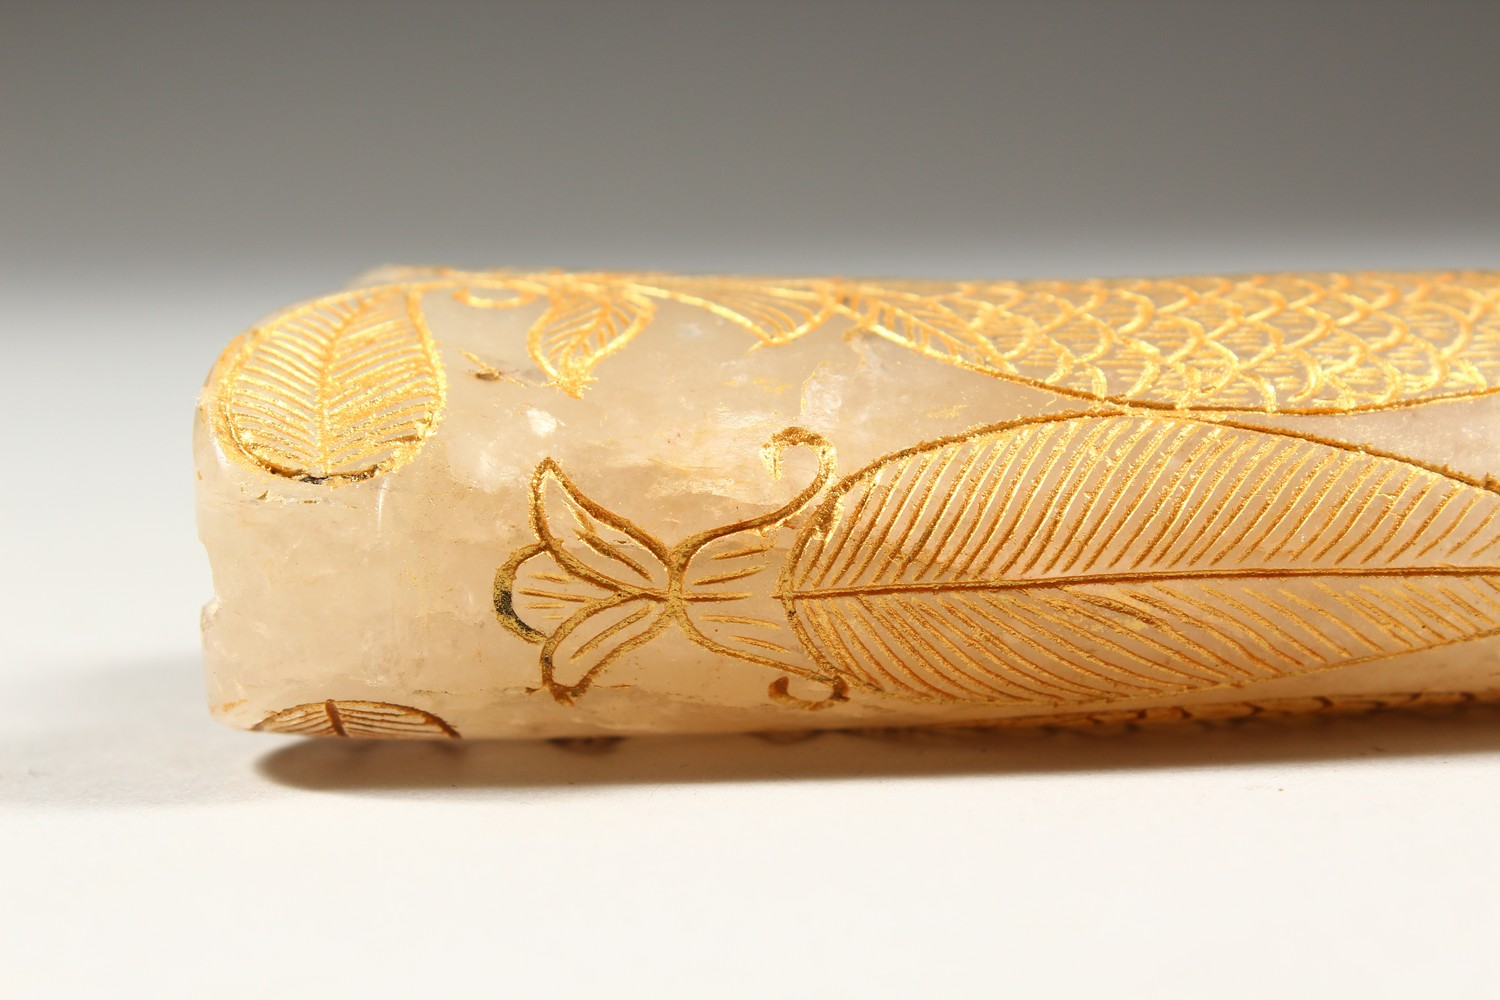 Lot 9 - A GOOD EARLY 20TH CENTURY PERSIAN CARVED JADE DAGGER KHANJAR HANDLE, the body of the curving